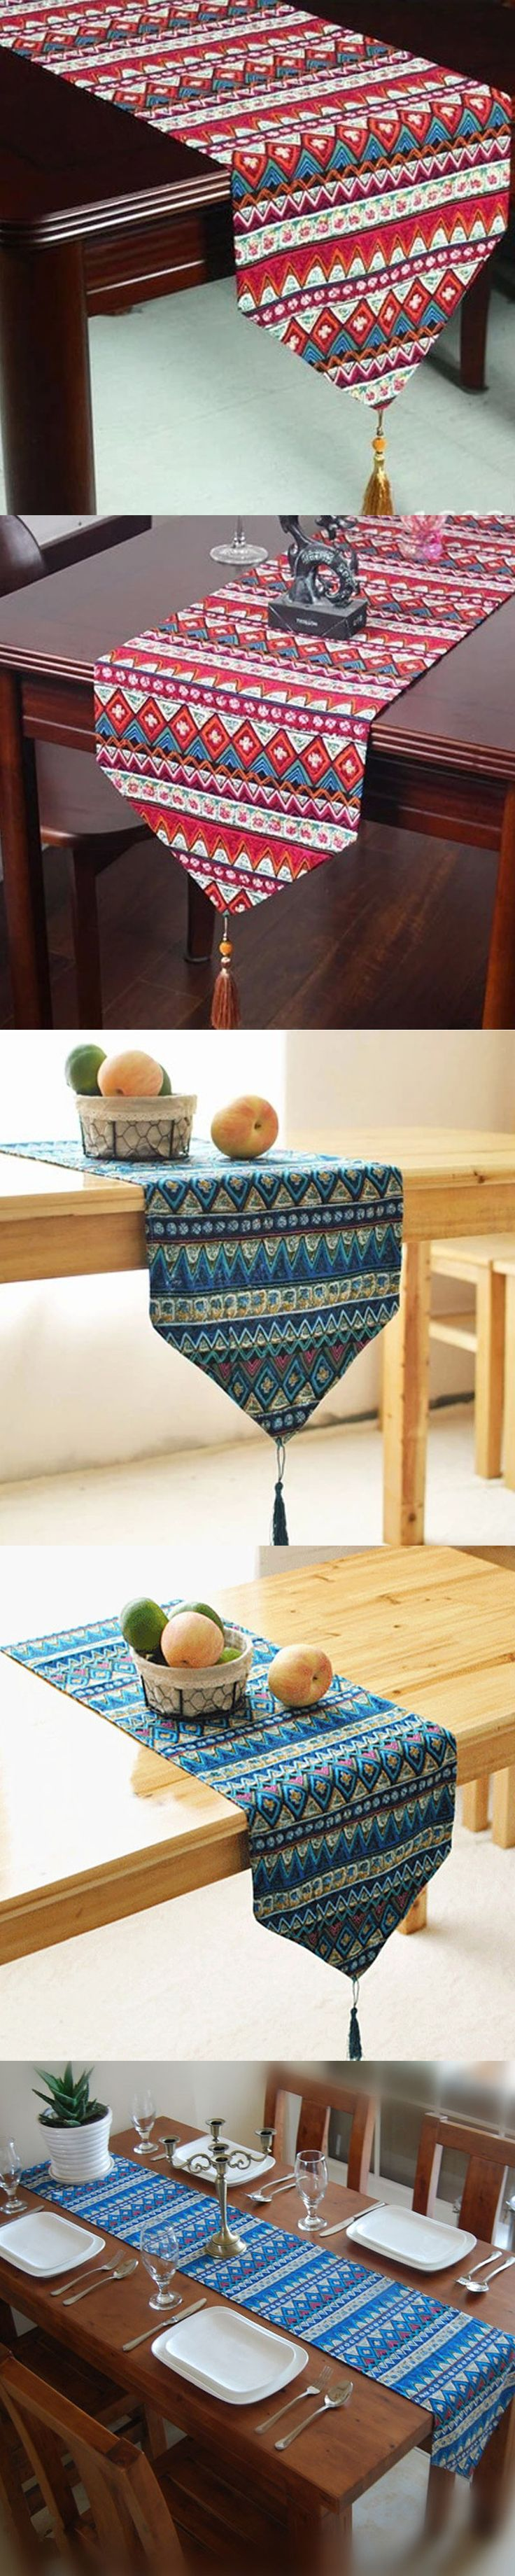 Cotton Linen Bohemian Style Tassel Table Runner Dining Table Cover Kitchen Hotel Home Textile Home Decor U0801 $14.99